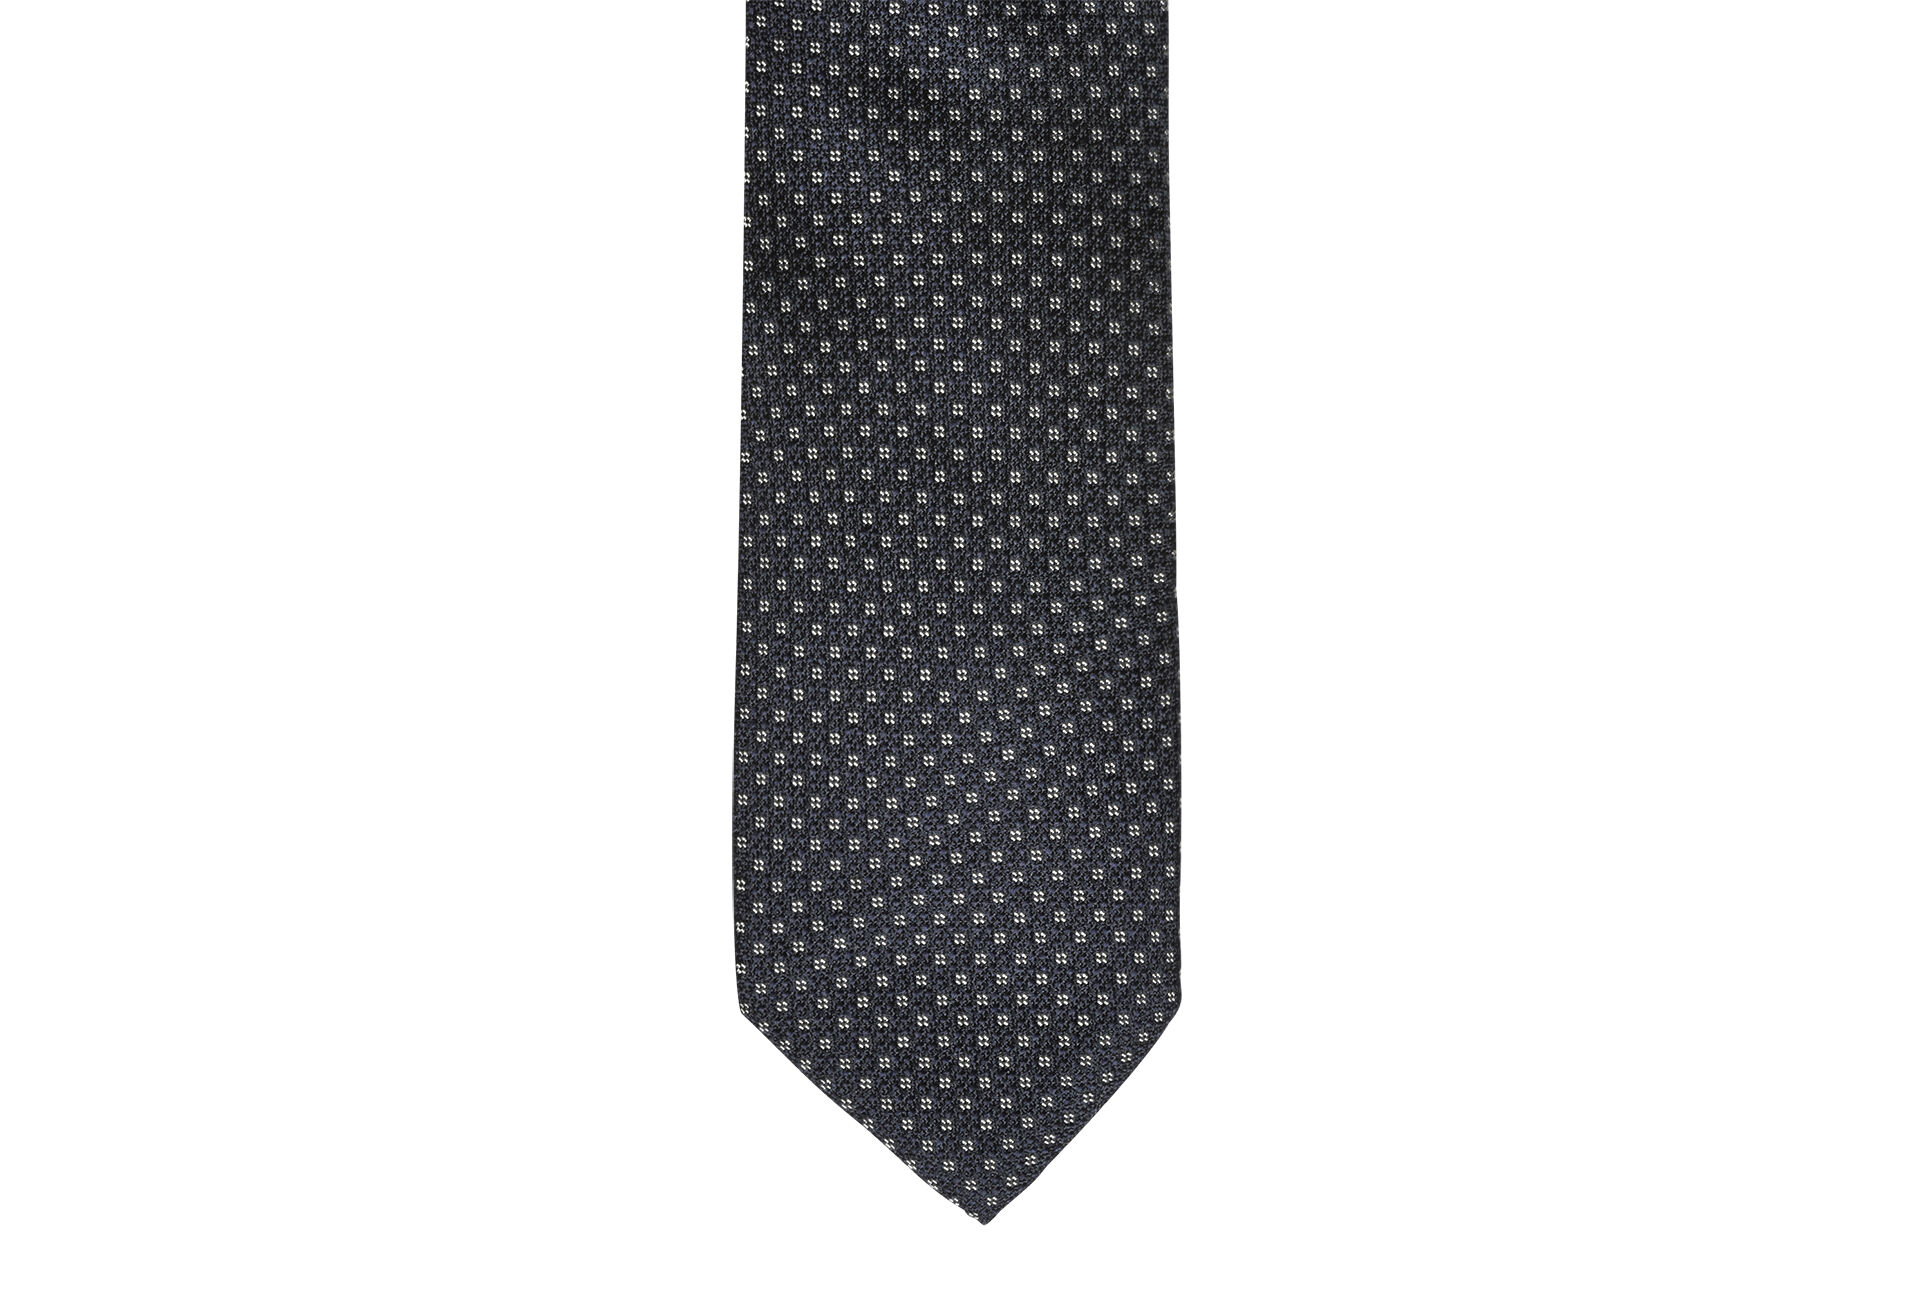 Squared Silk Tie navy and beige